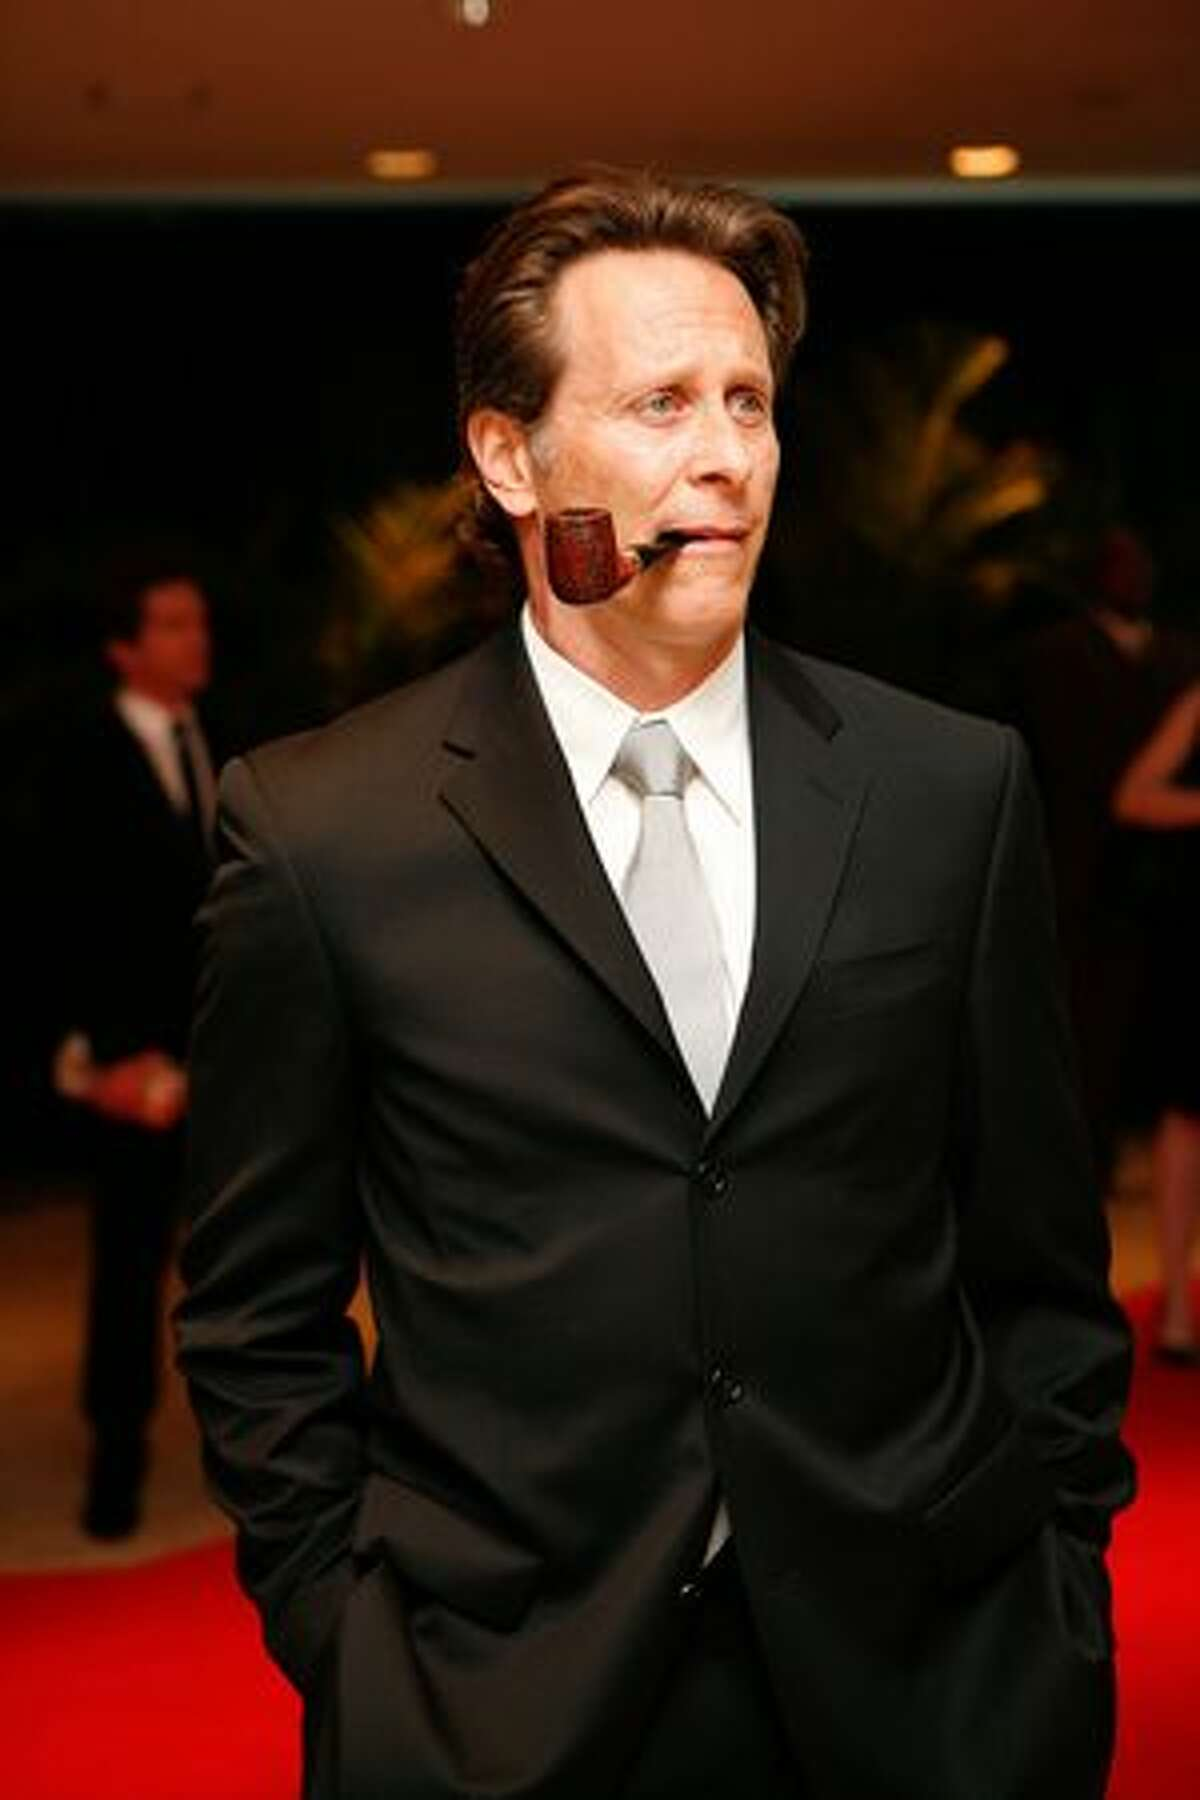 Actor Steven Weber arrives at the White House Correspondents' Association dinner on May 1, 2010 in Washington, D.C. The annual dinner featured comedian Jay Leno and was attended by President Barack Obama and First Lady Michelle Obama.